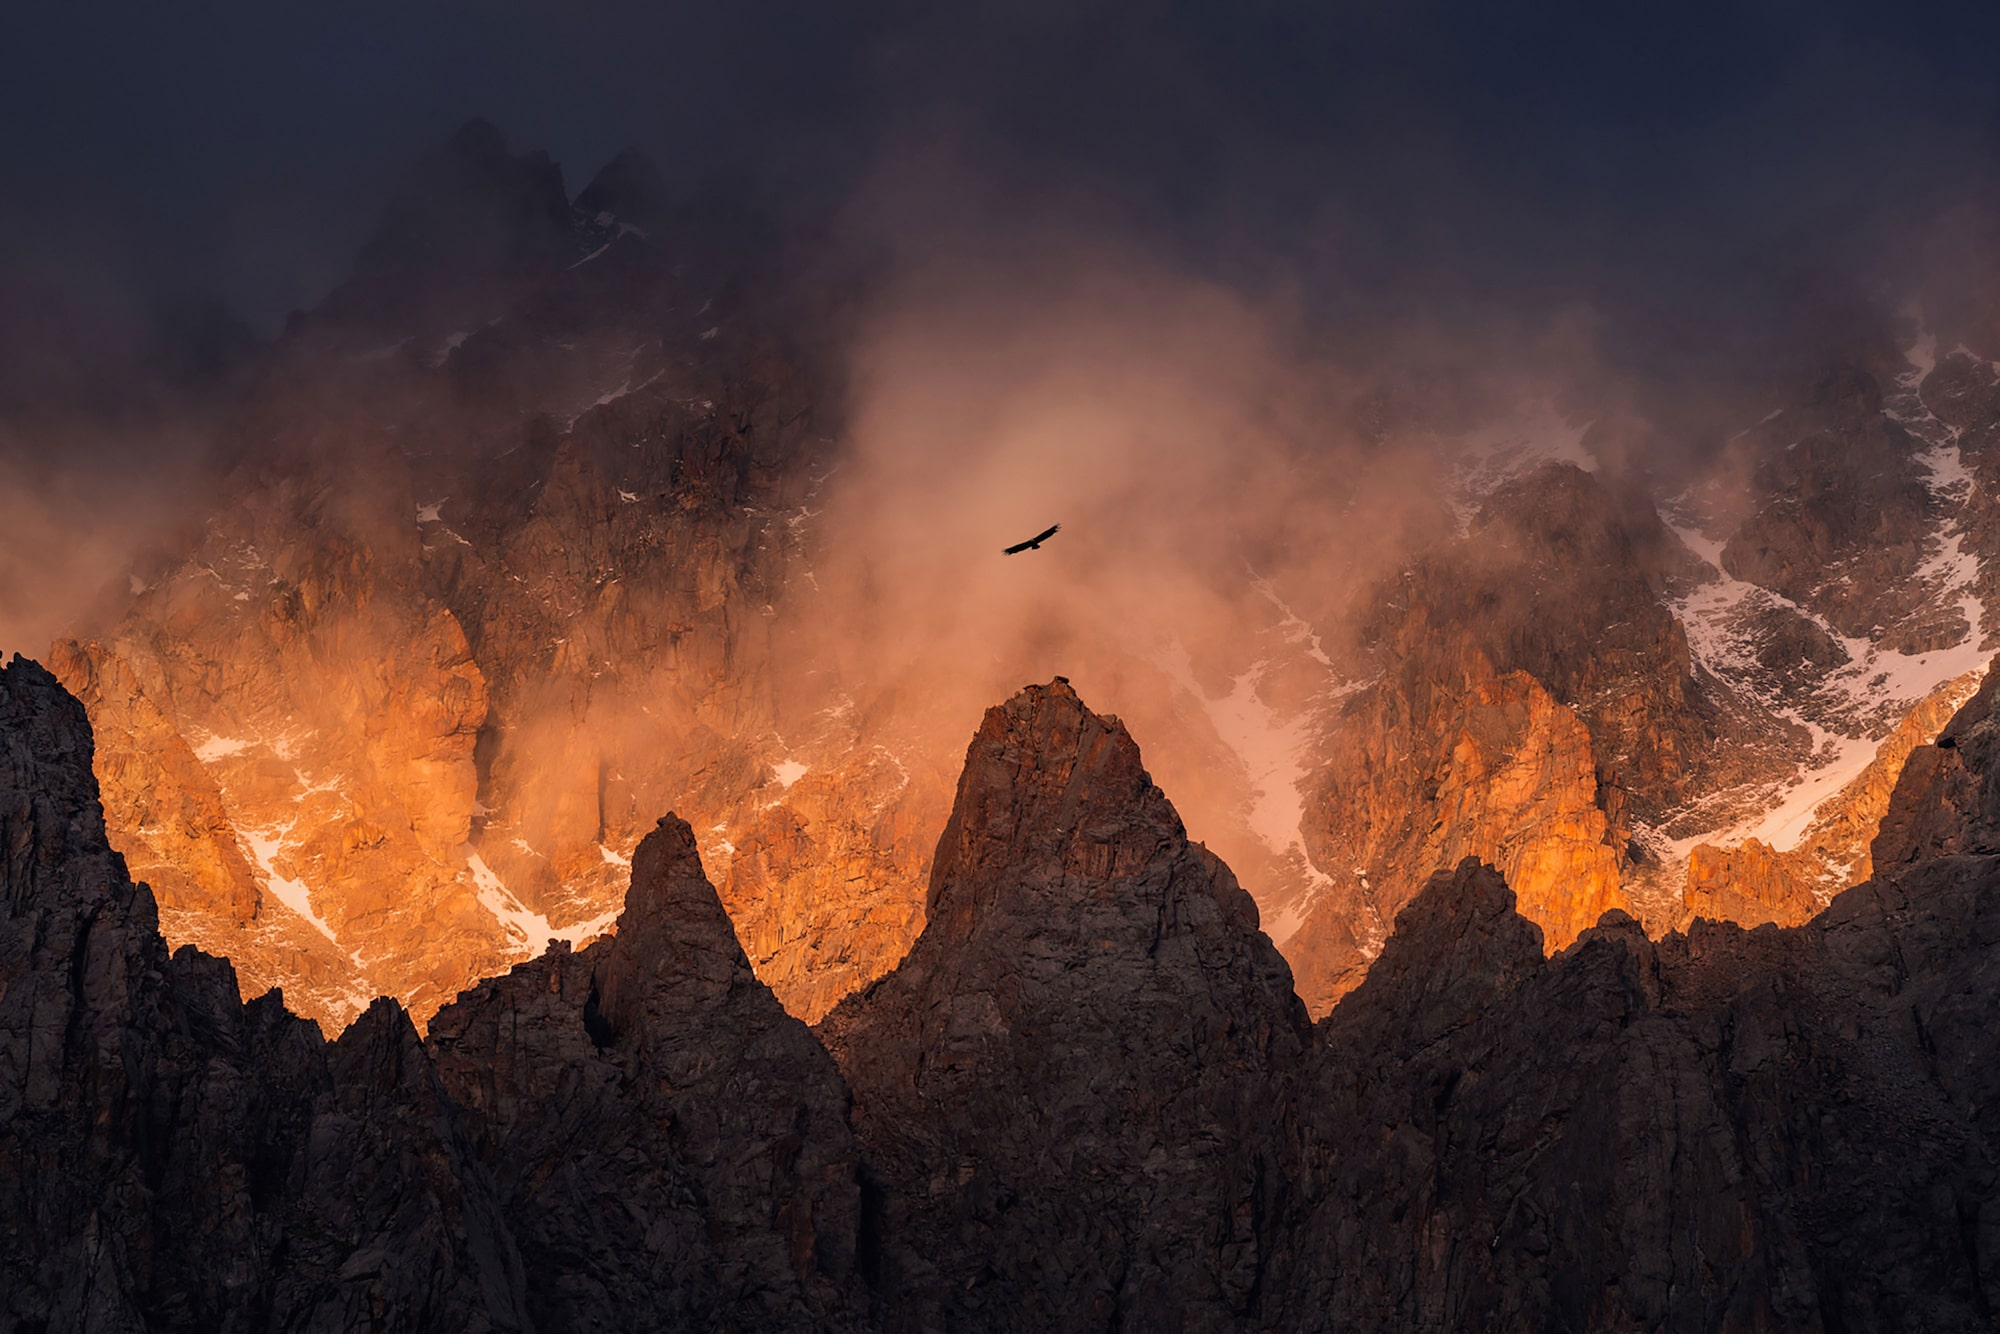 albert dros sony alpha 7RIII an eagle soars above volcanic mountains illuminated in fiery orange